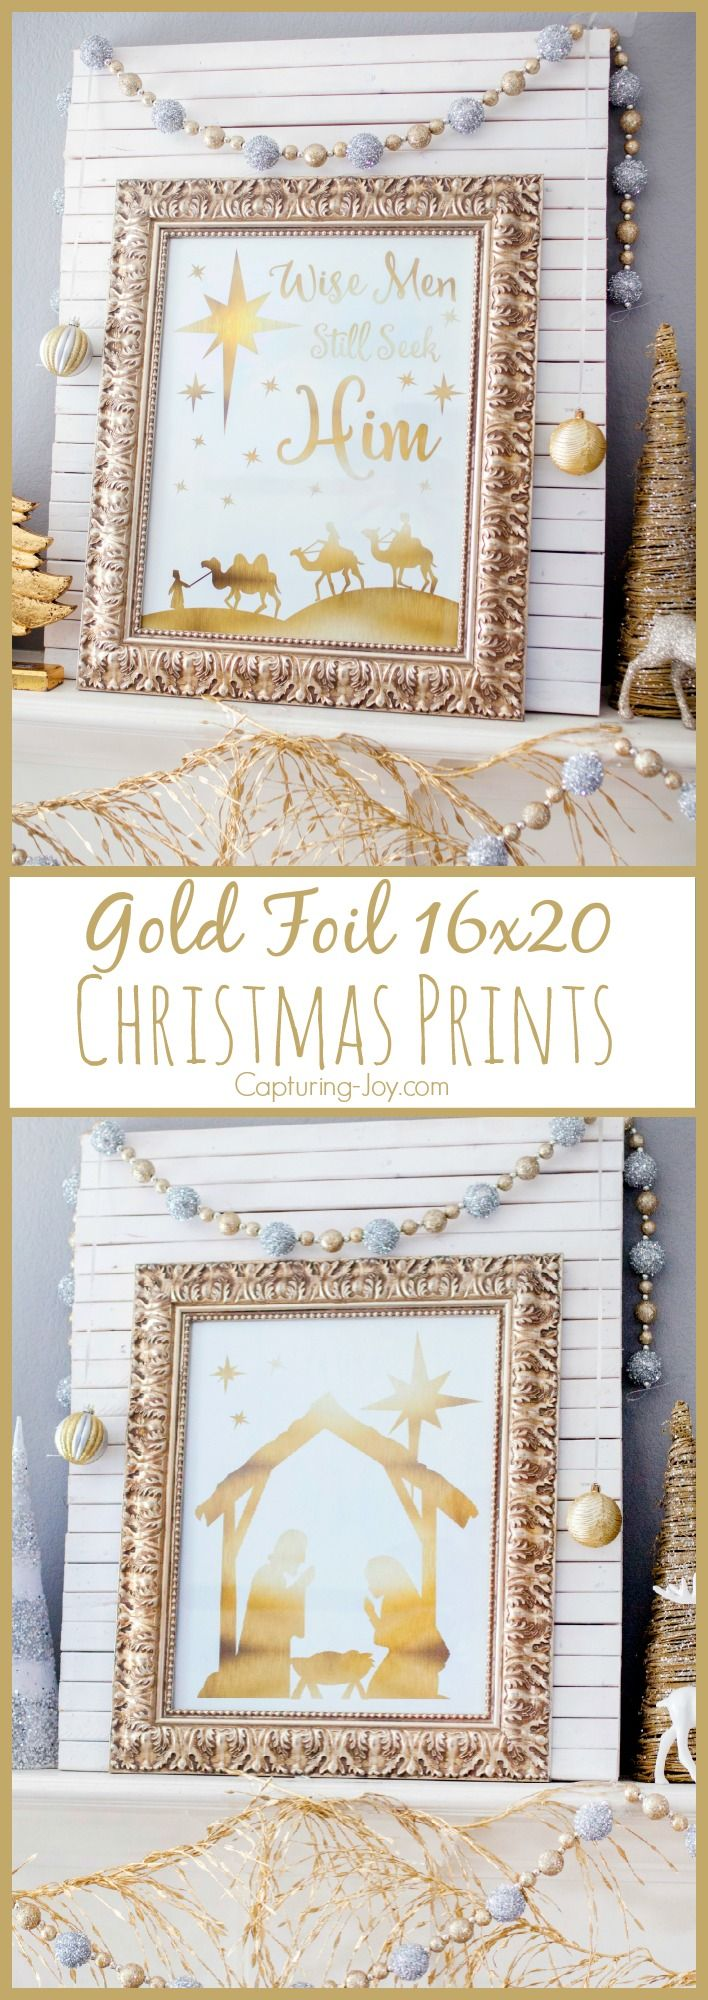 Gold Foil 16x20 Christmas Prints of Nativity and Wise Men Still Seek Him holiday sayings. Great gift idea with tags, or home art decoration for mantel or wall display.